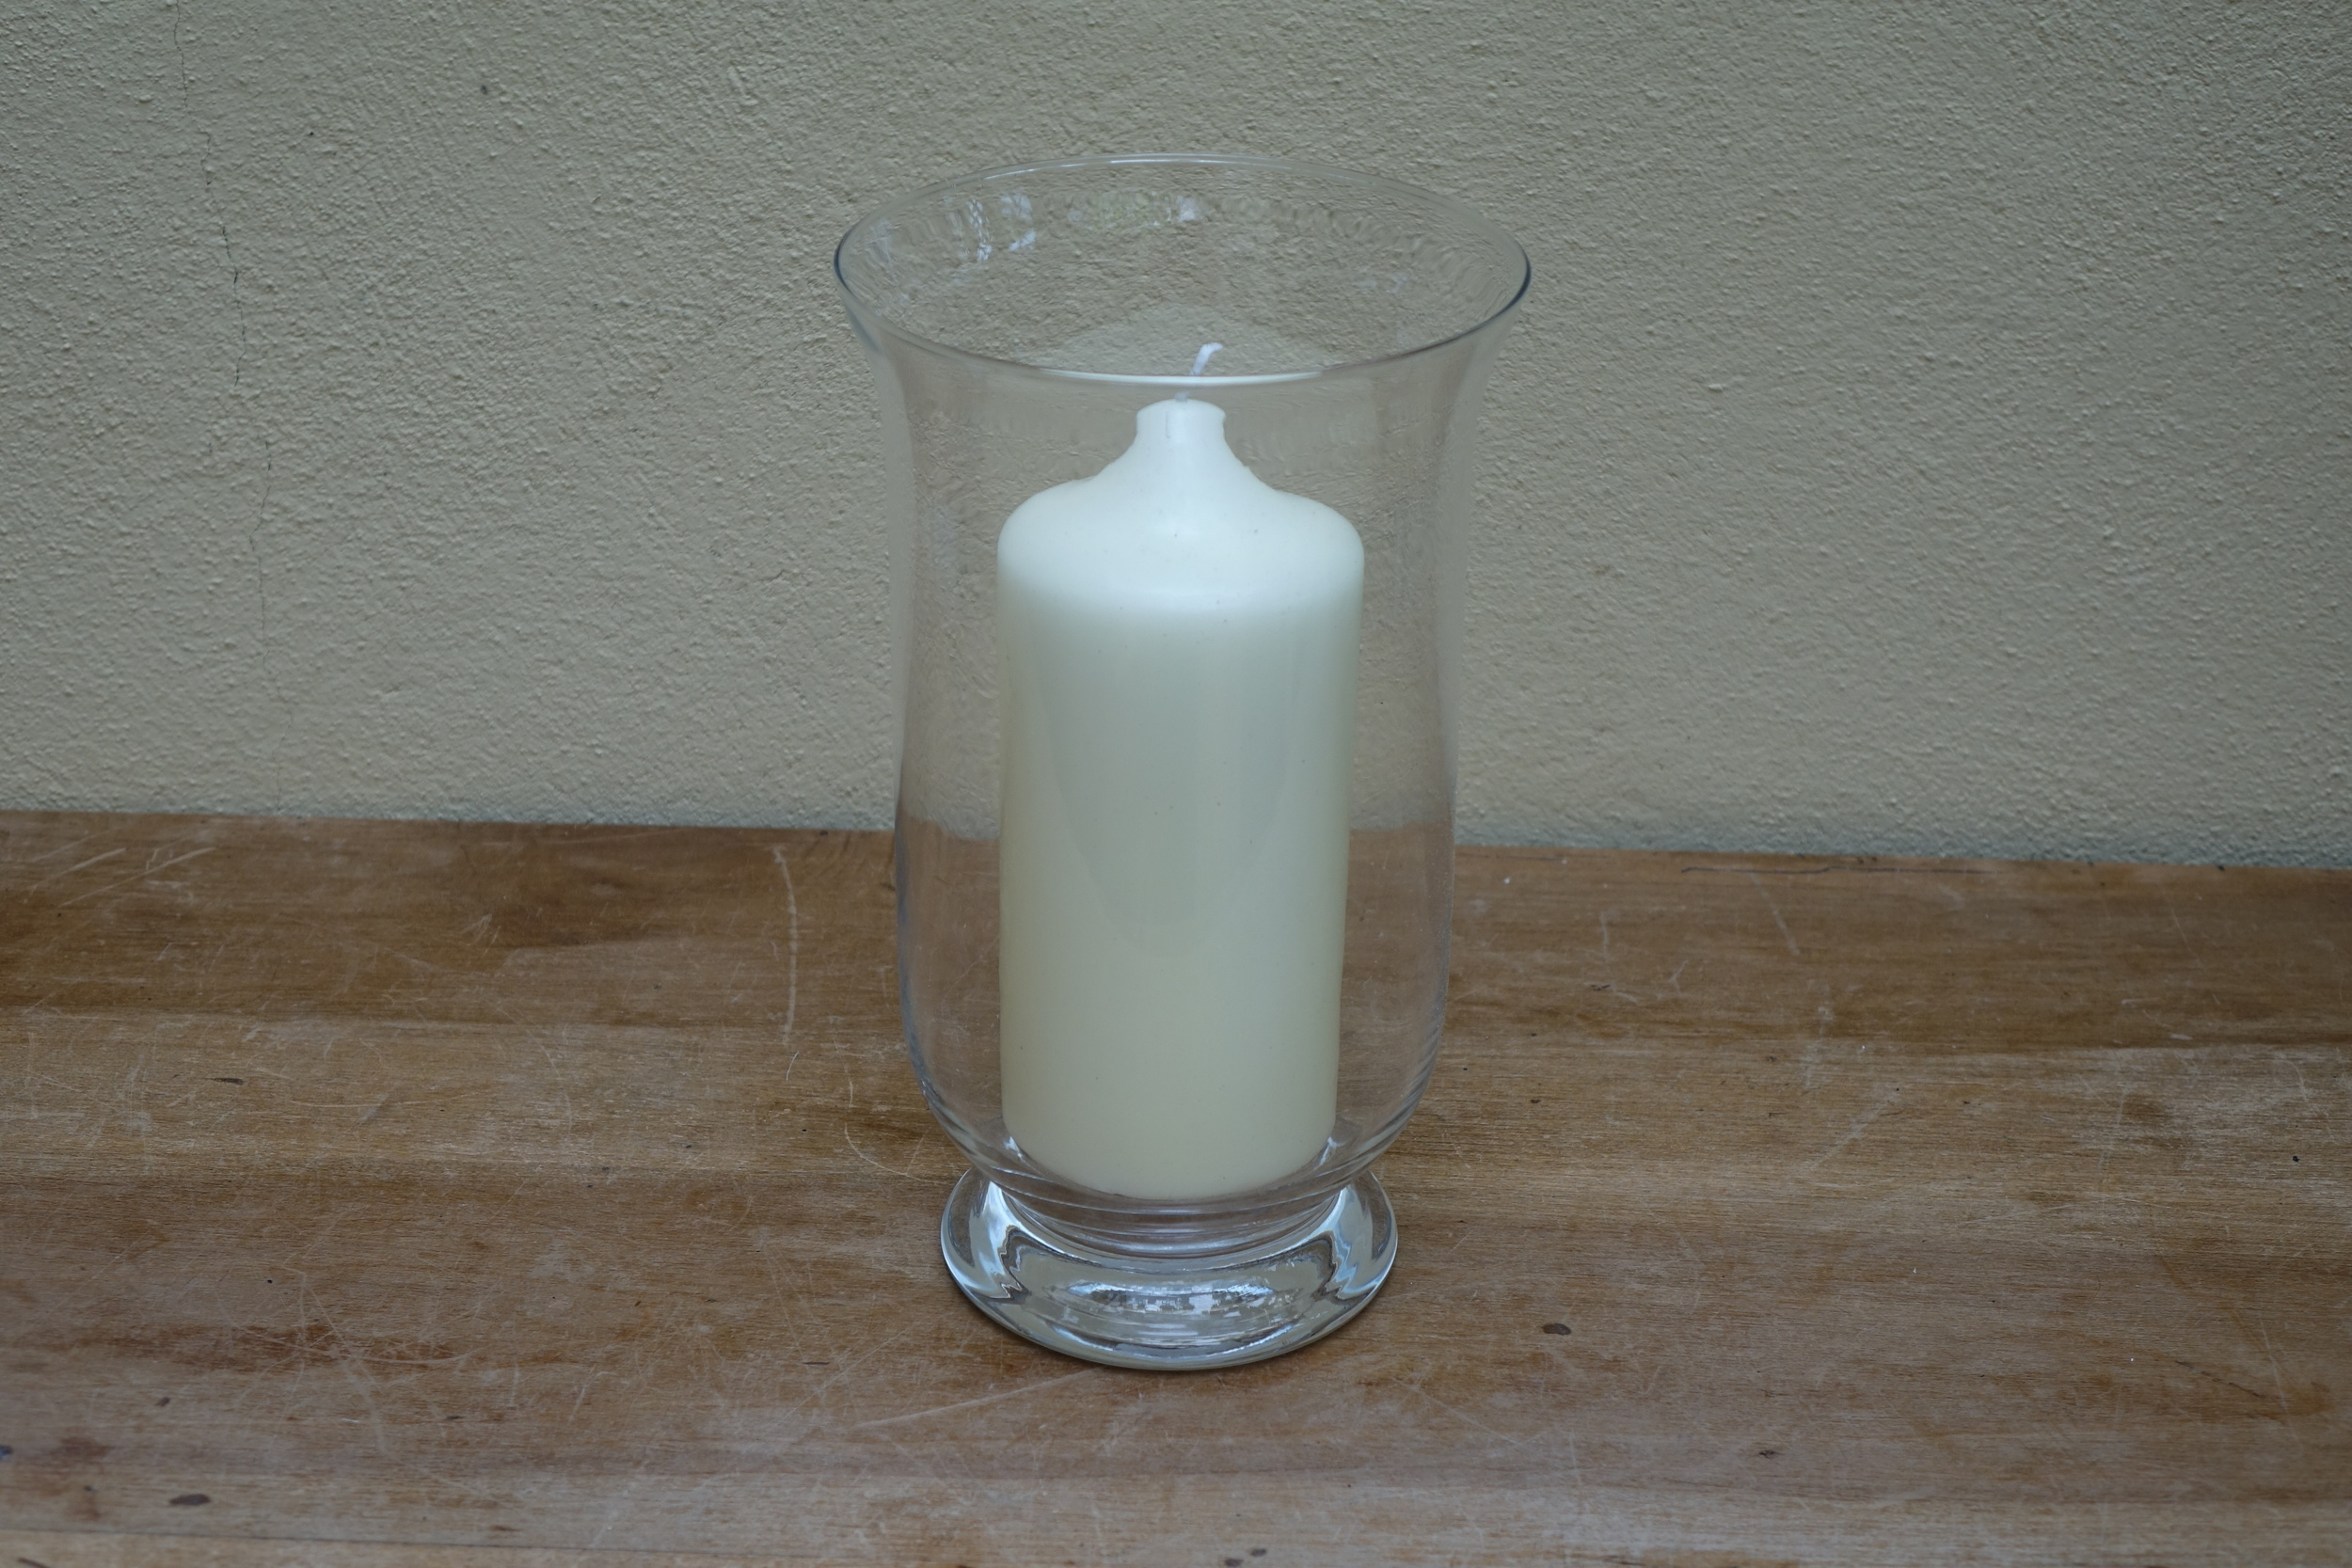 Glass Hurricane Lamp - 16 Medium £3, 8 large £5 Available